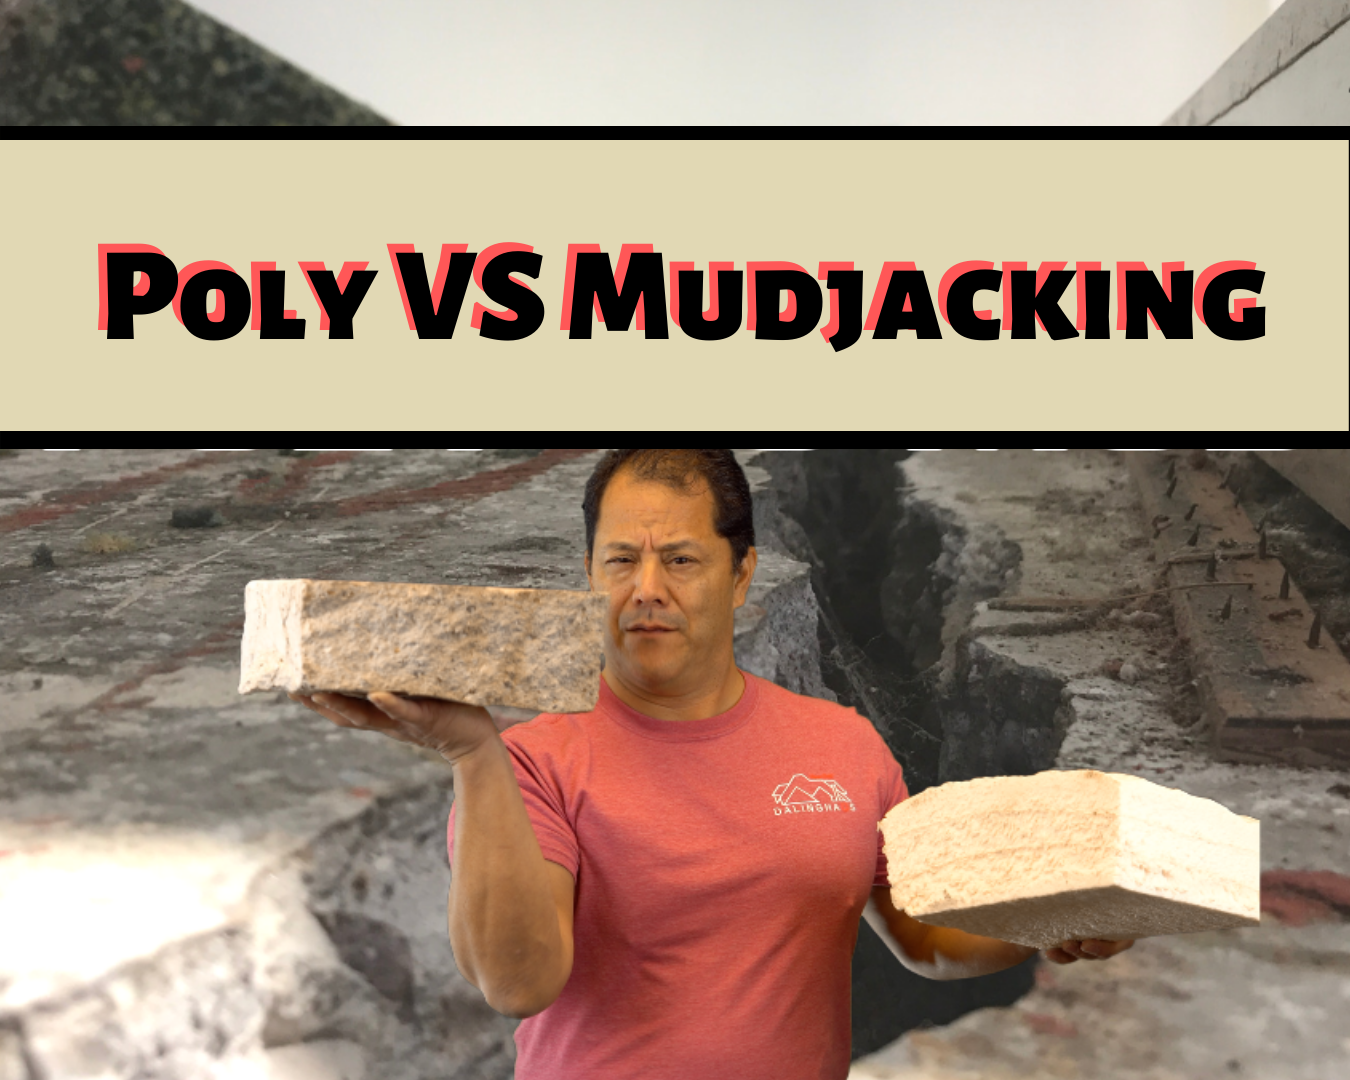 POLYURETHANE LIFTING VERSUS MUDJACKING